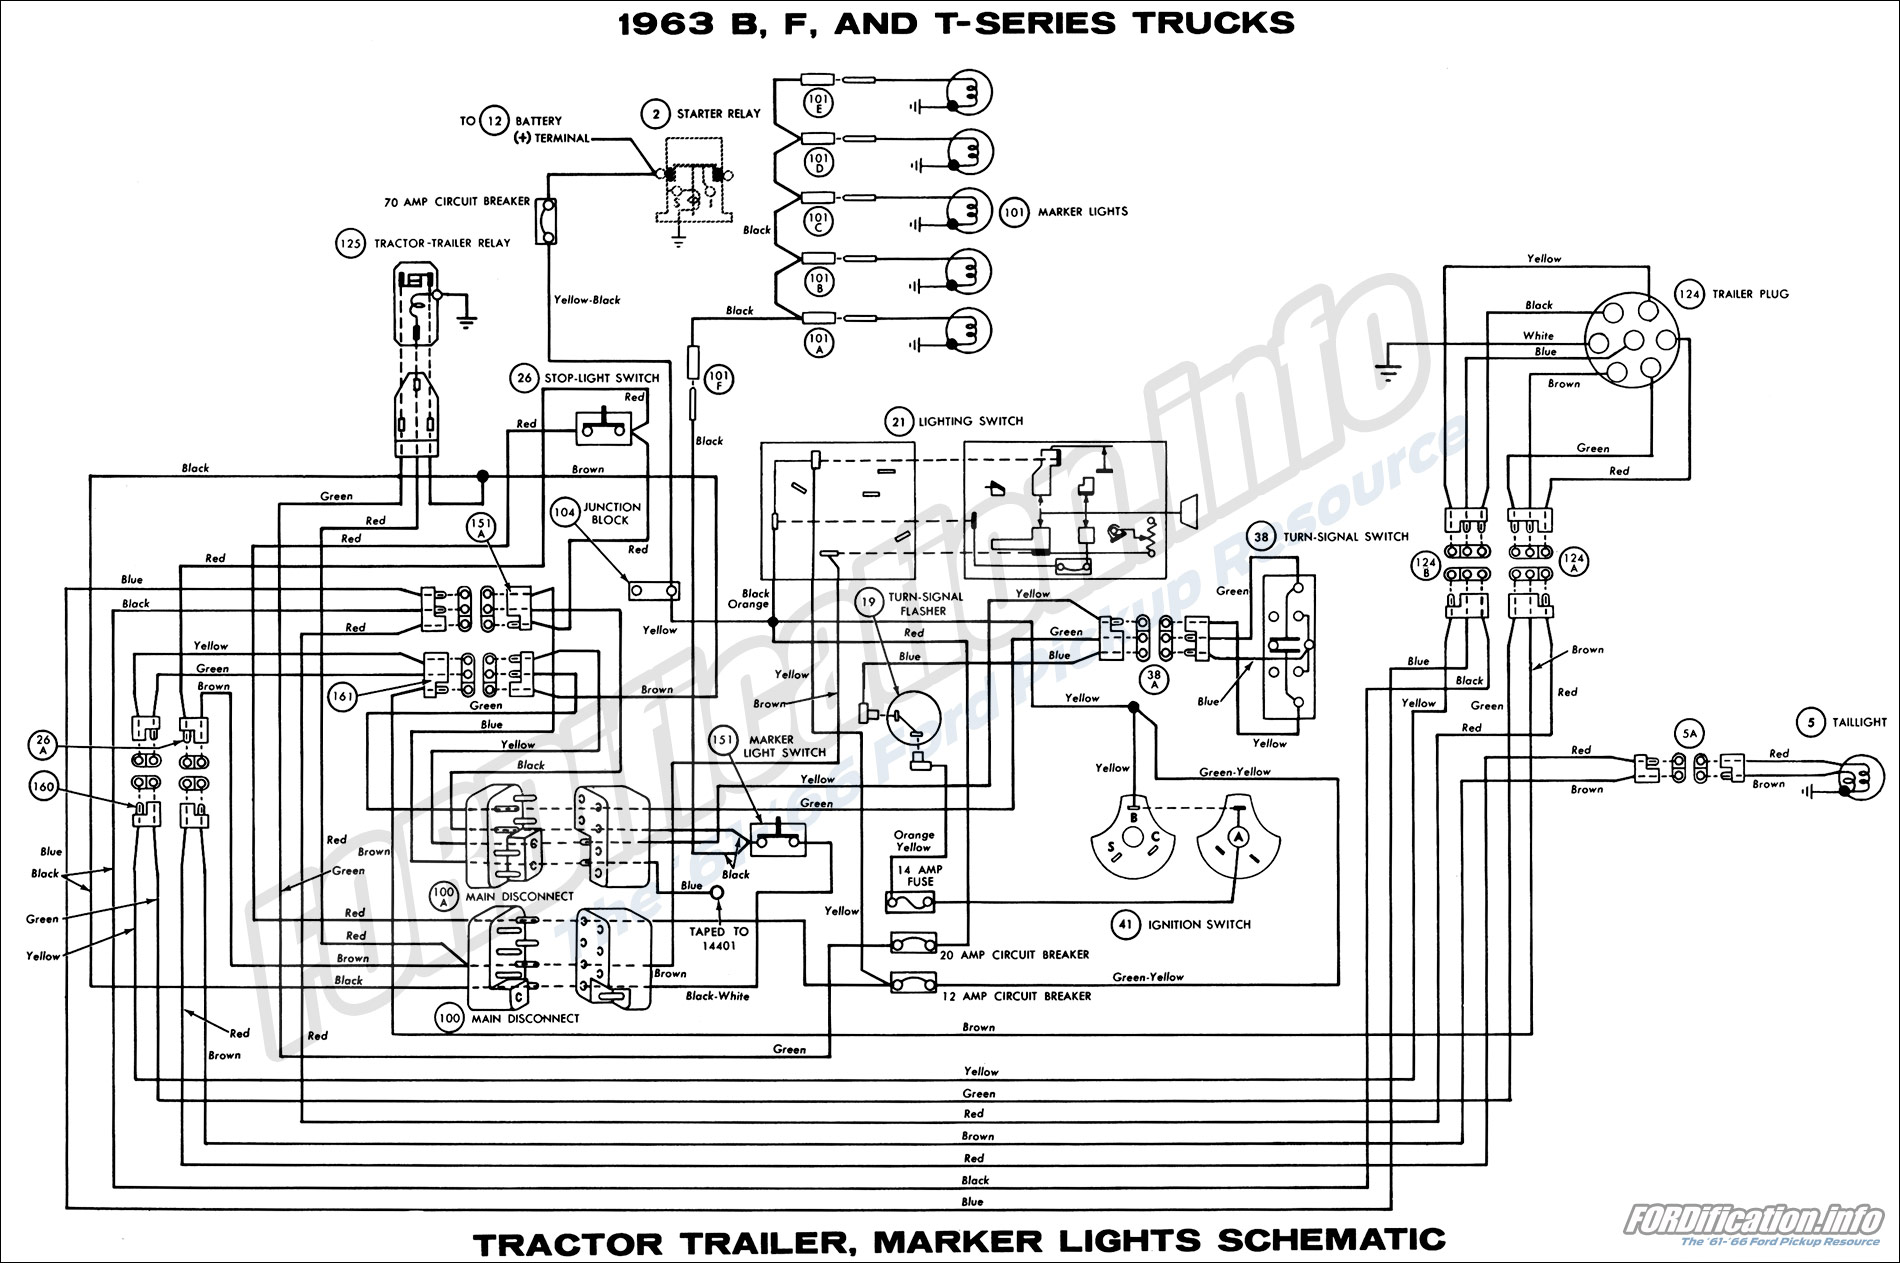 semi trailer wiring diagram for a starter 1963 ford truck diagrams fordification info the